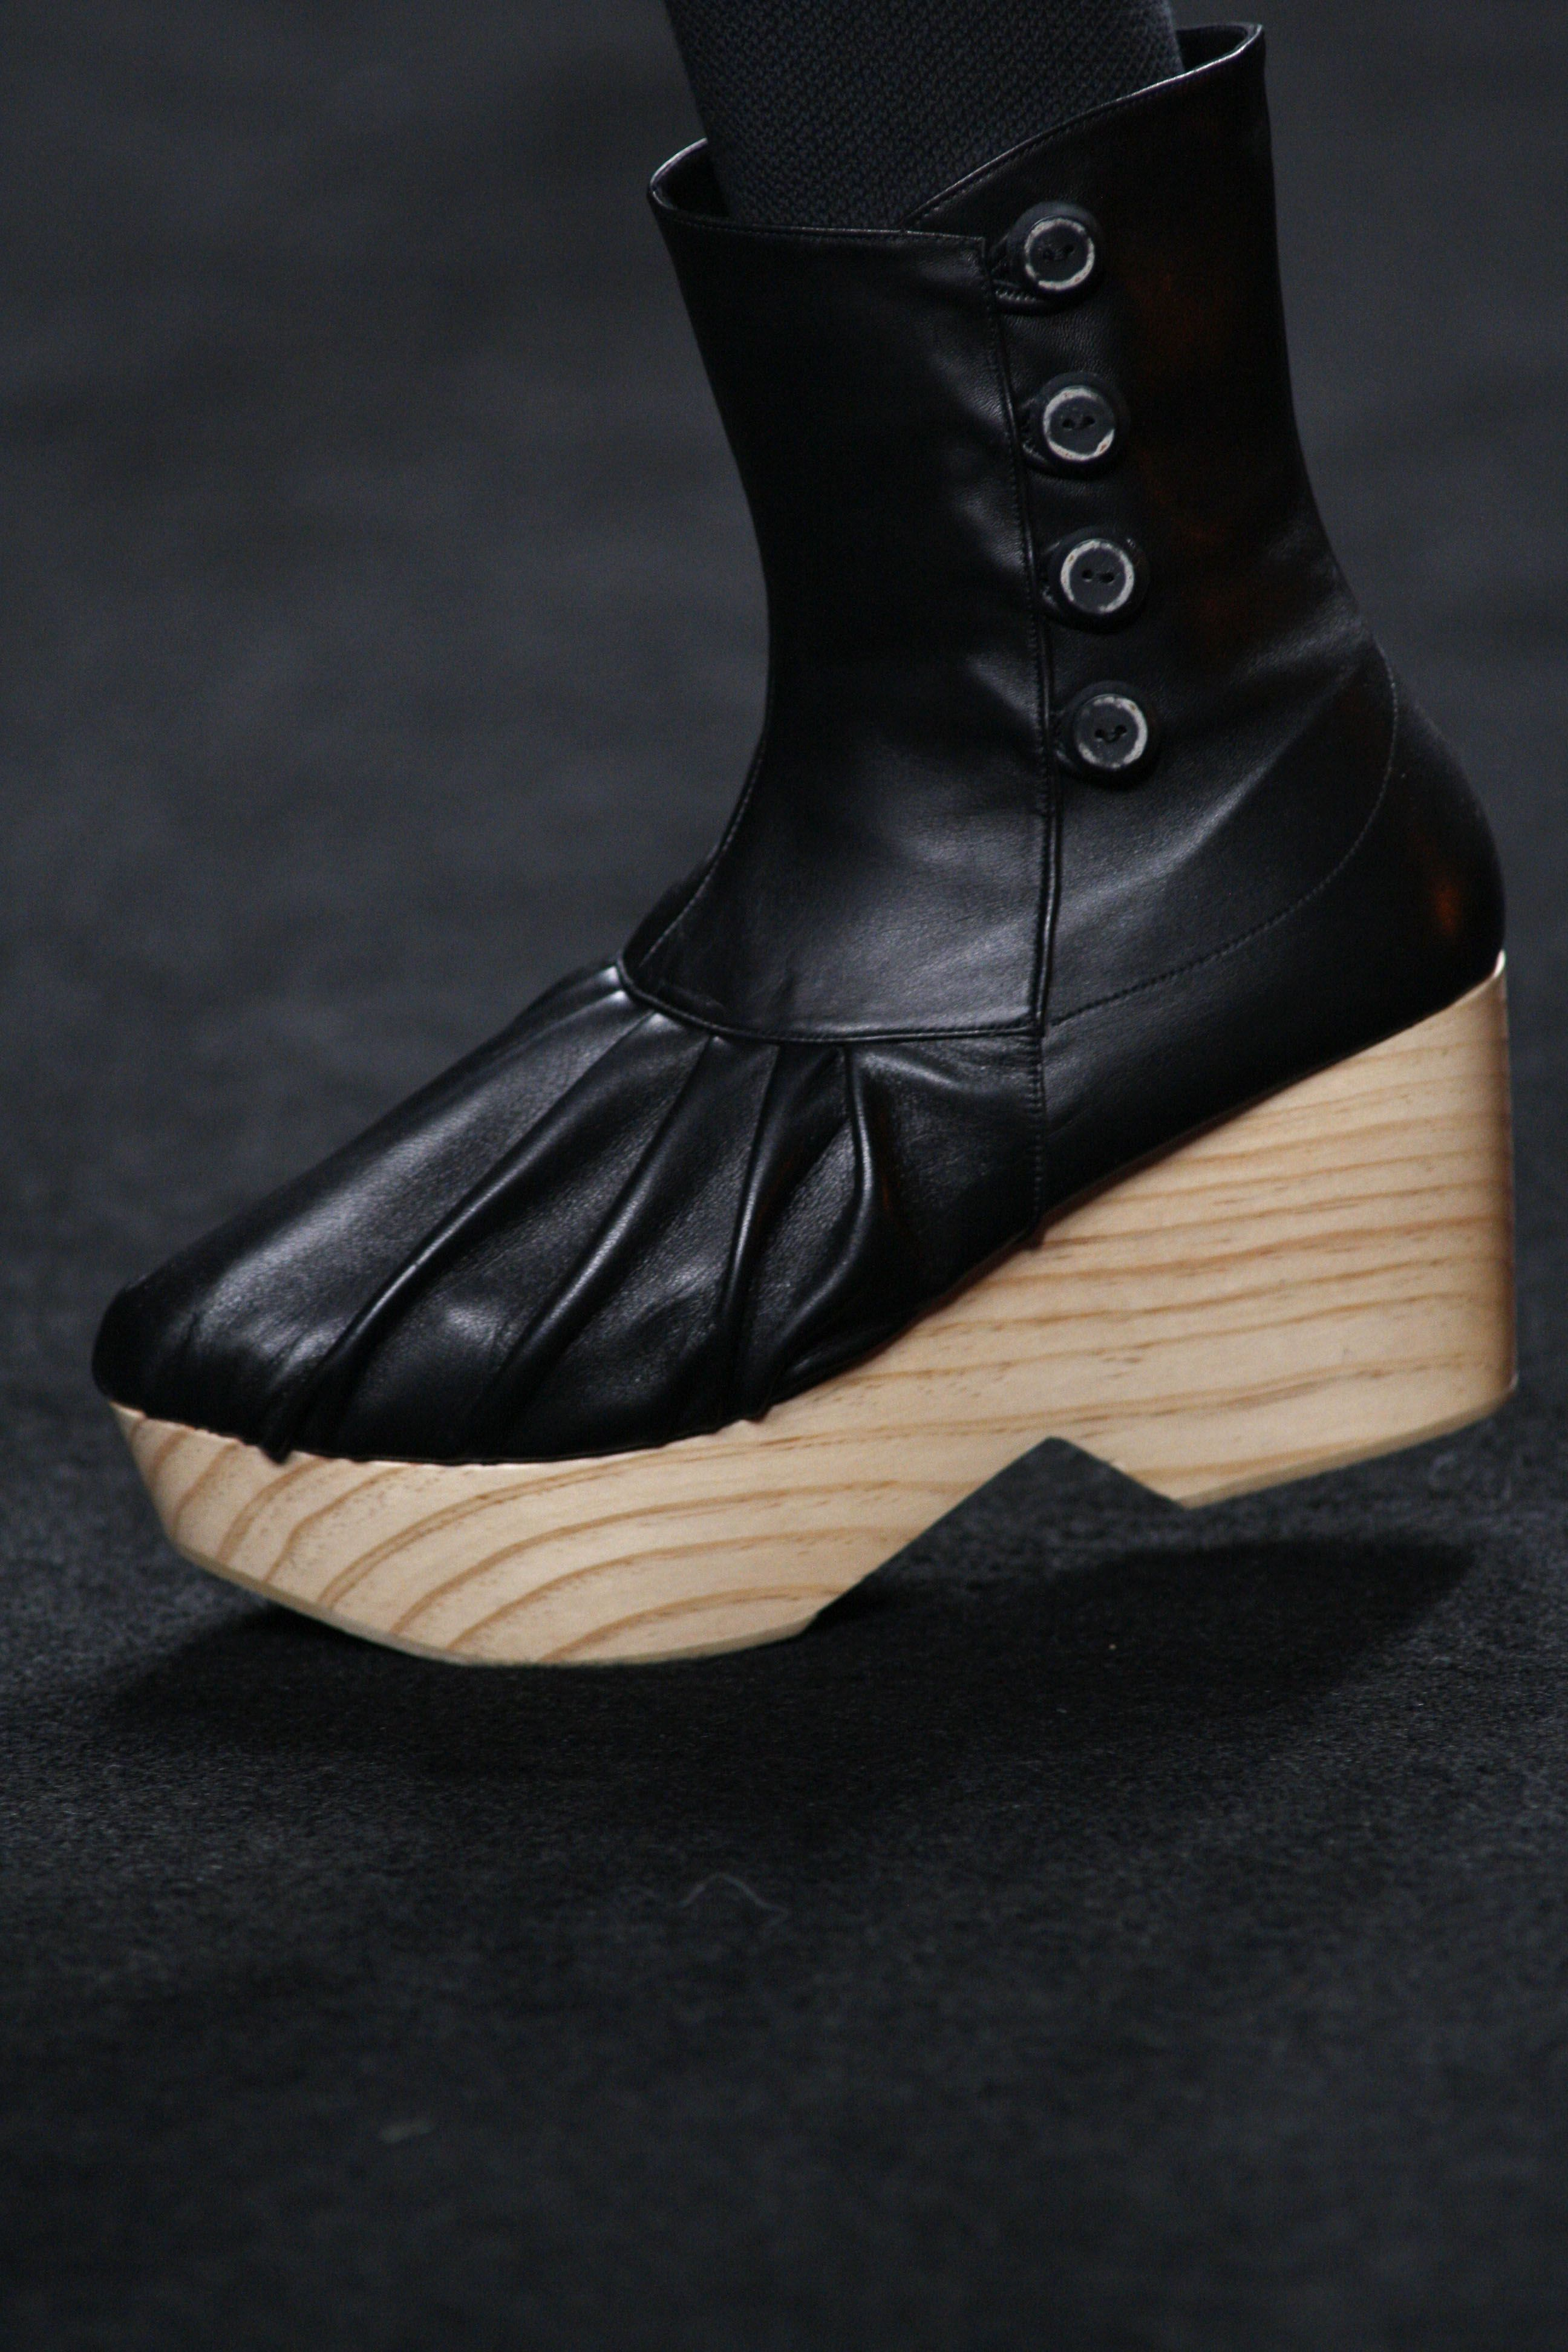 wood and leather flat platform wedges shoes by Miriam Ponsa FW 2012-13